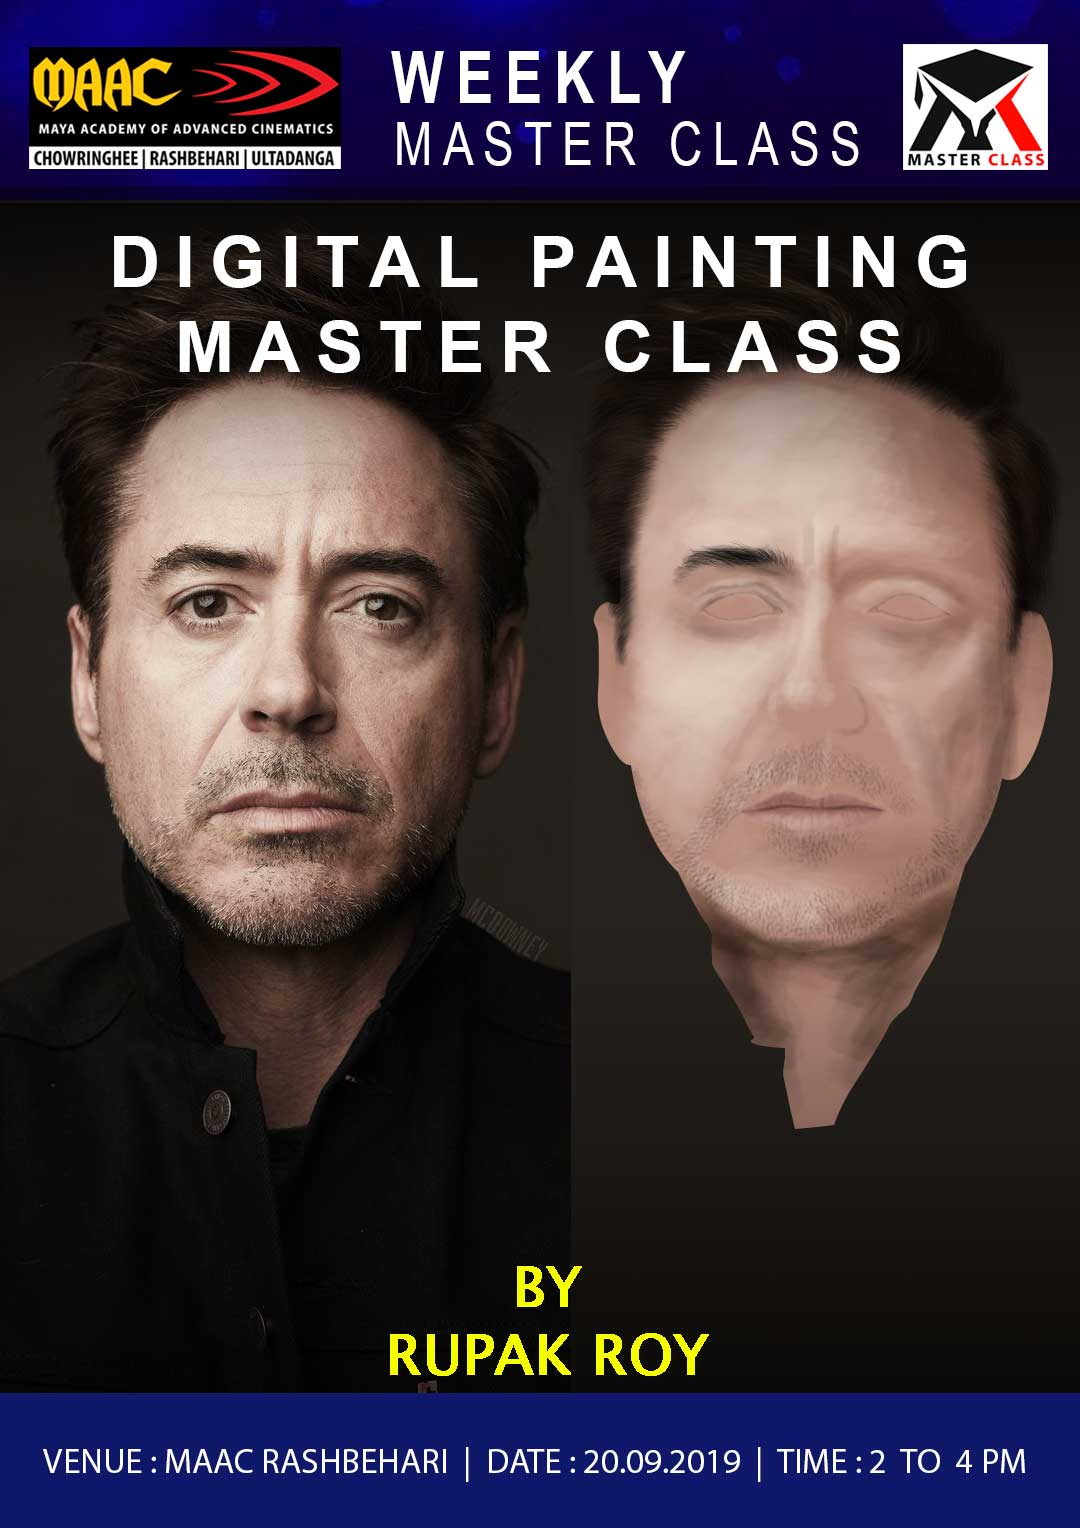 Weekly Master Class on Digital painting